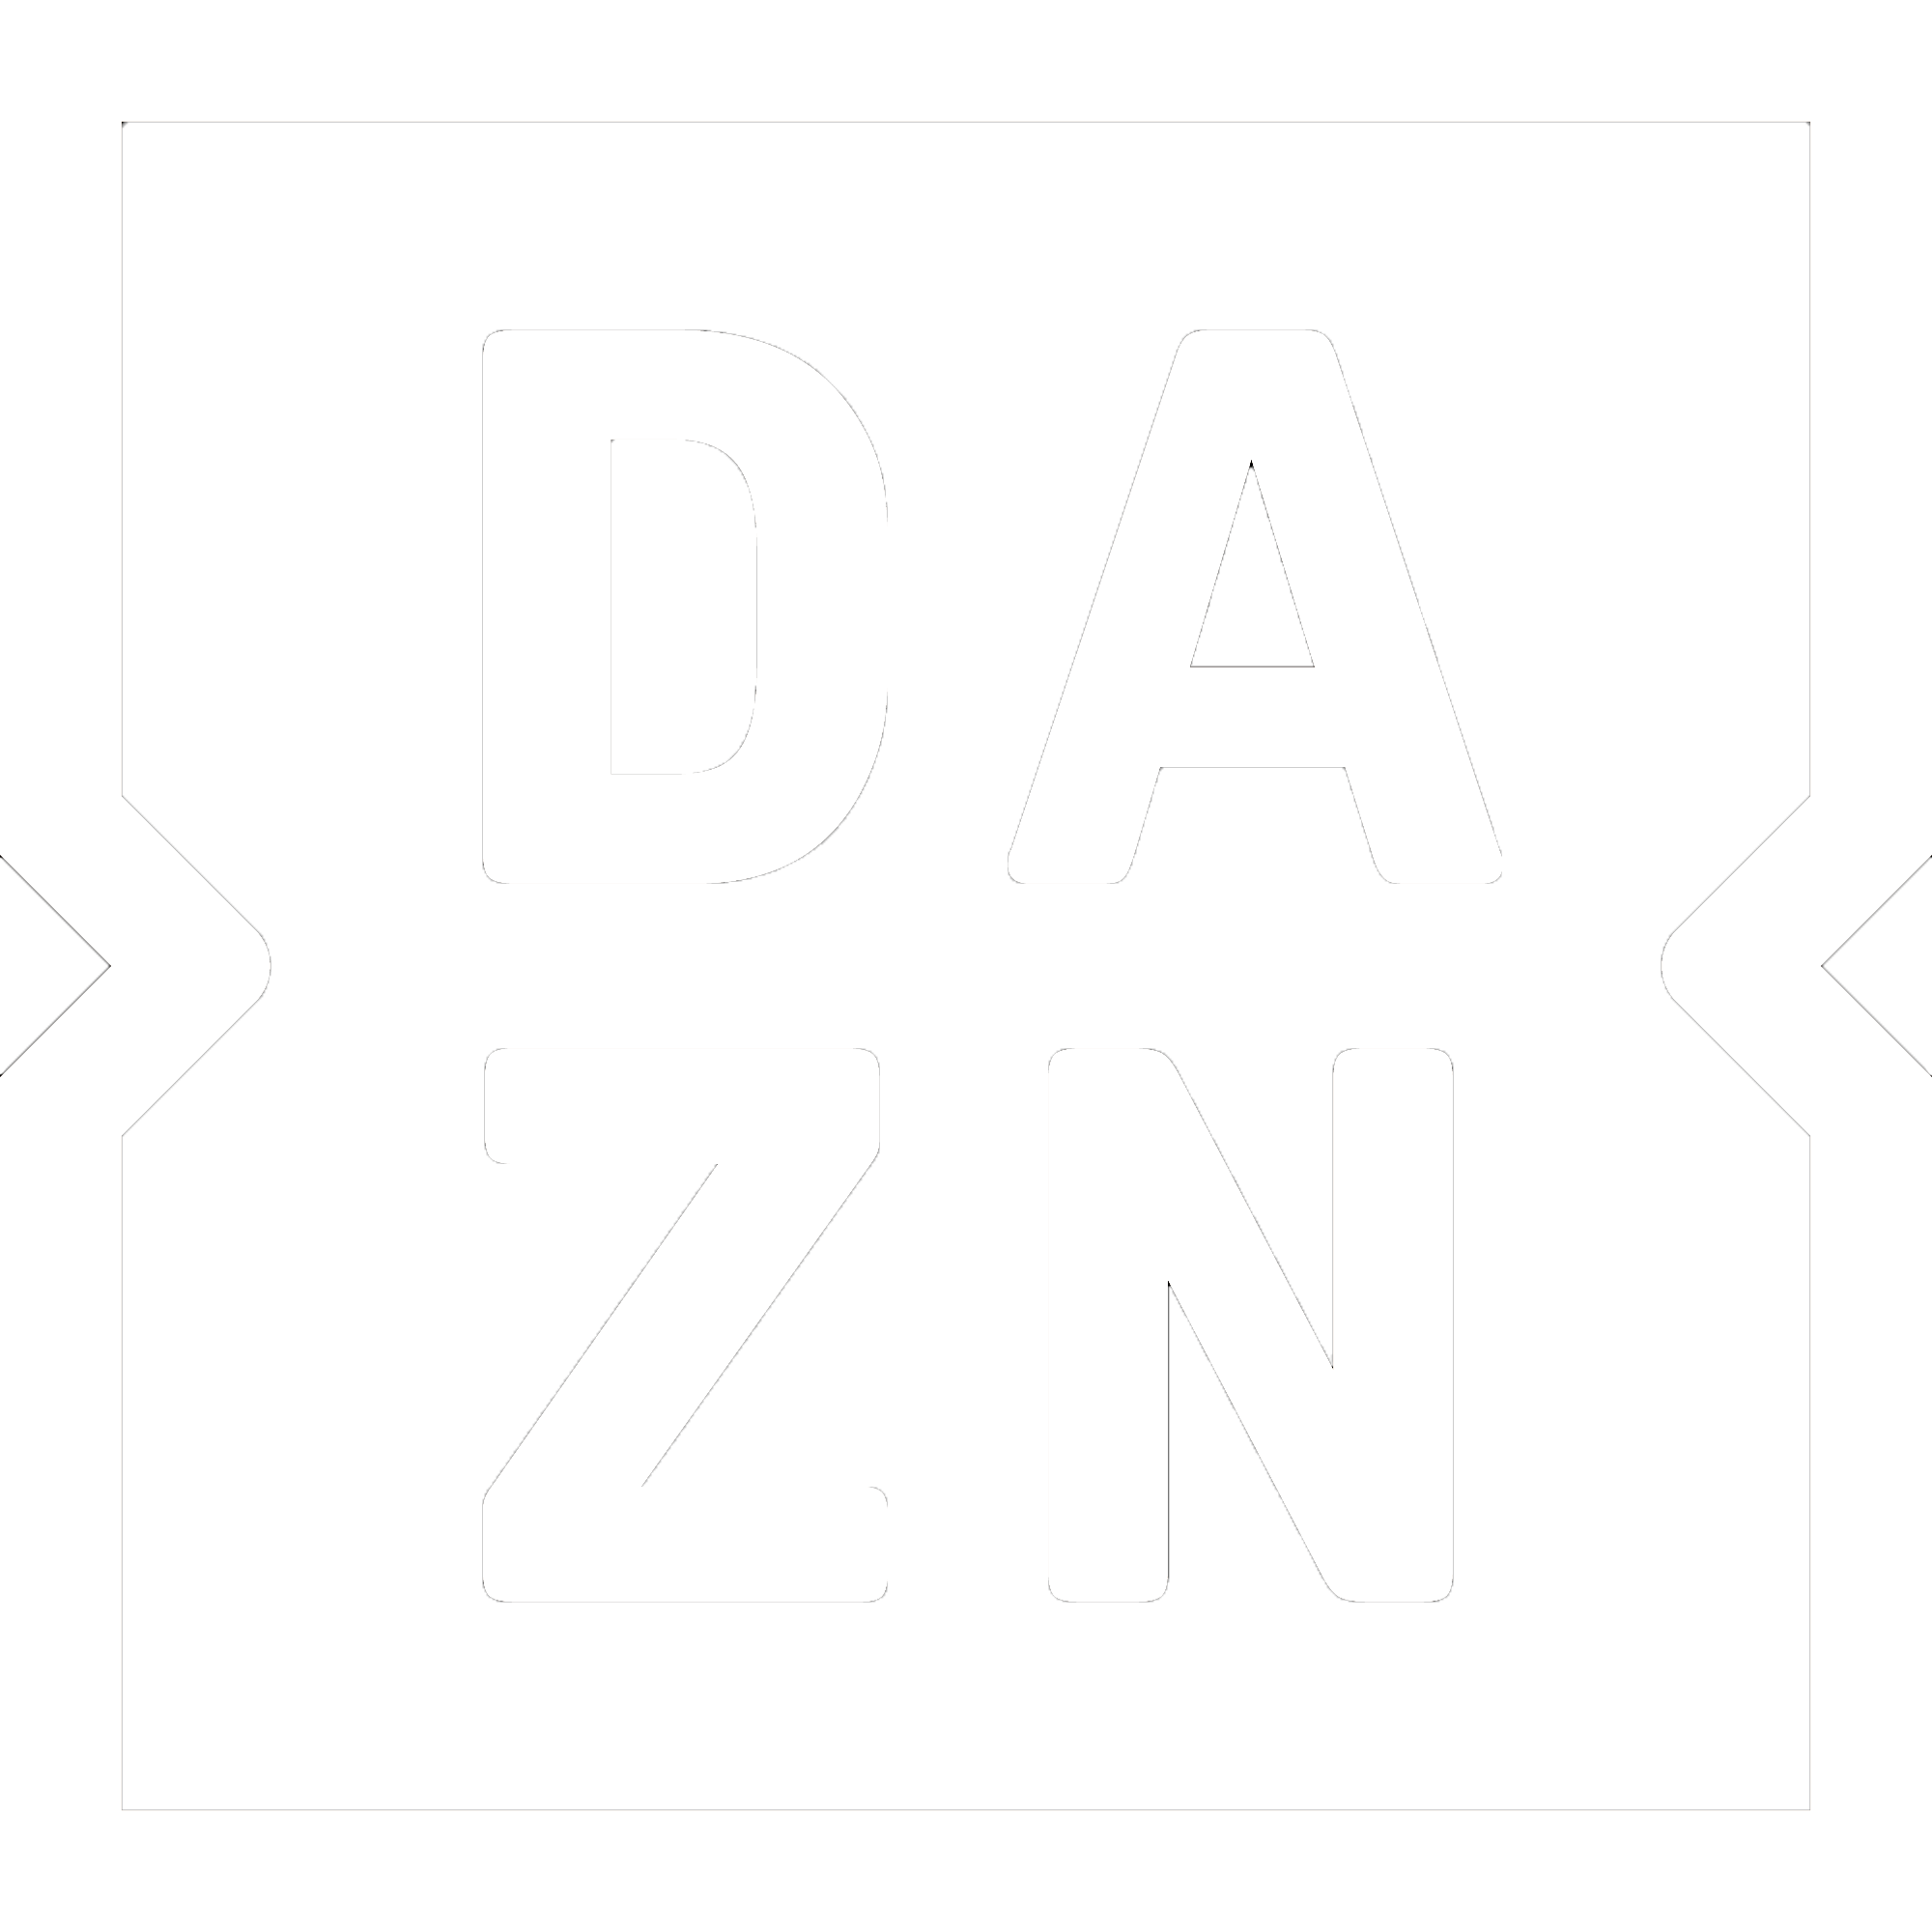 DAZN – We ALL Rise With More Eyes